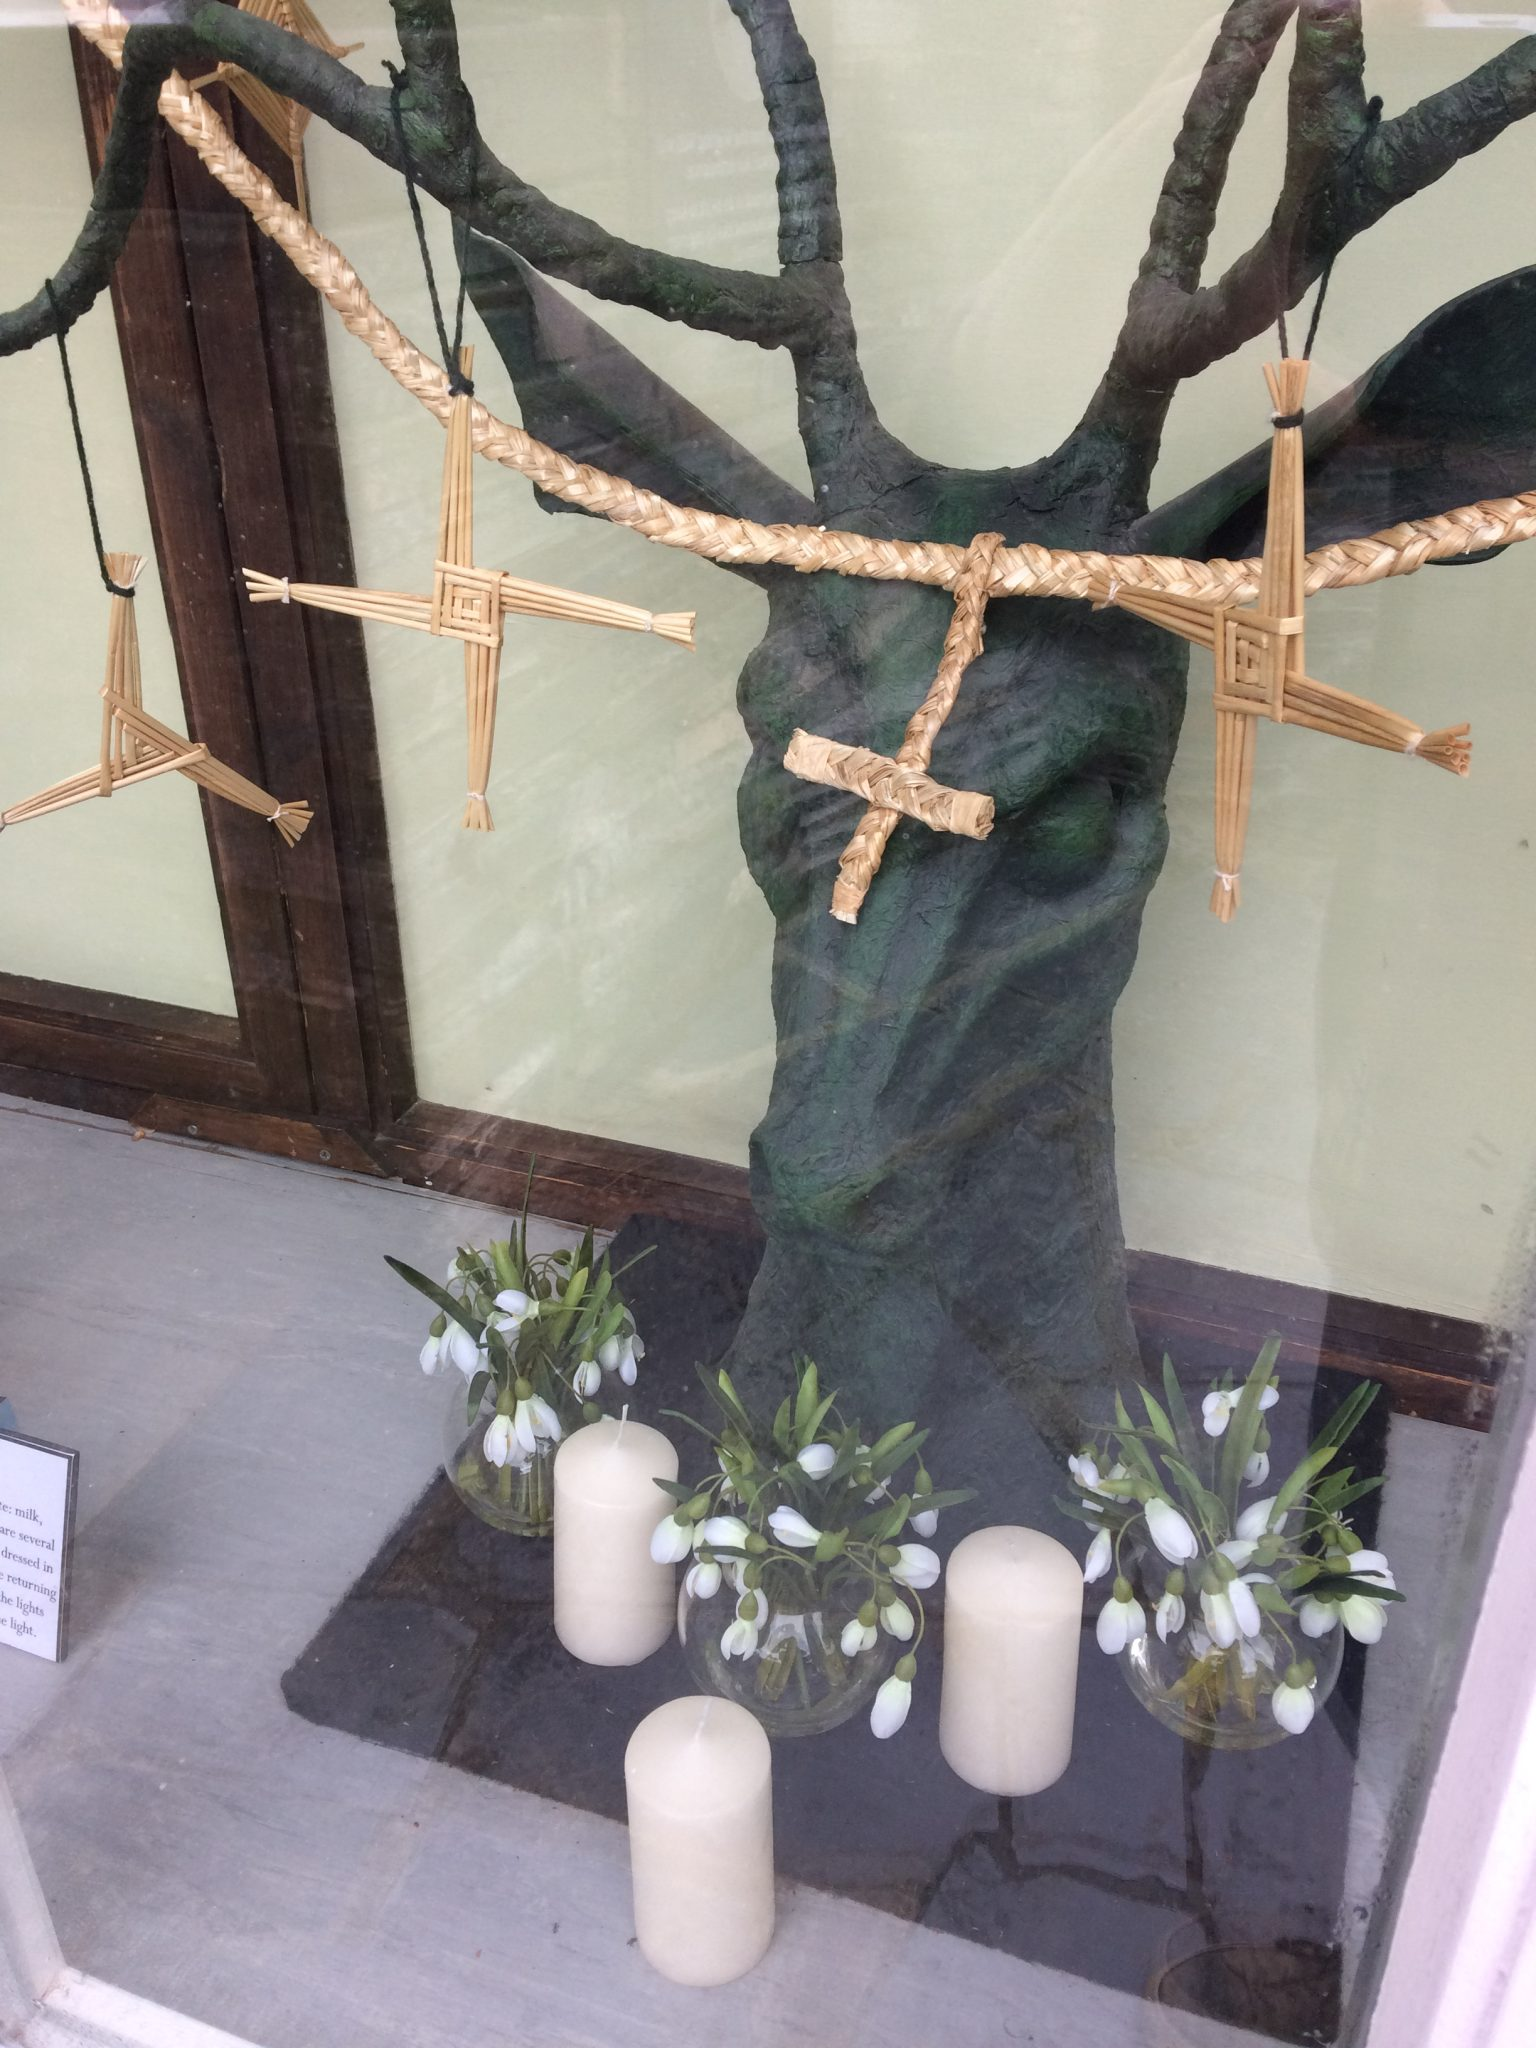 Imbolc window display